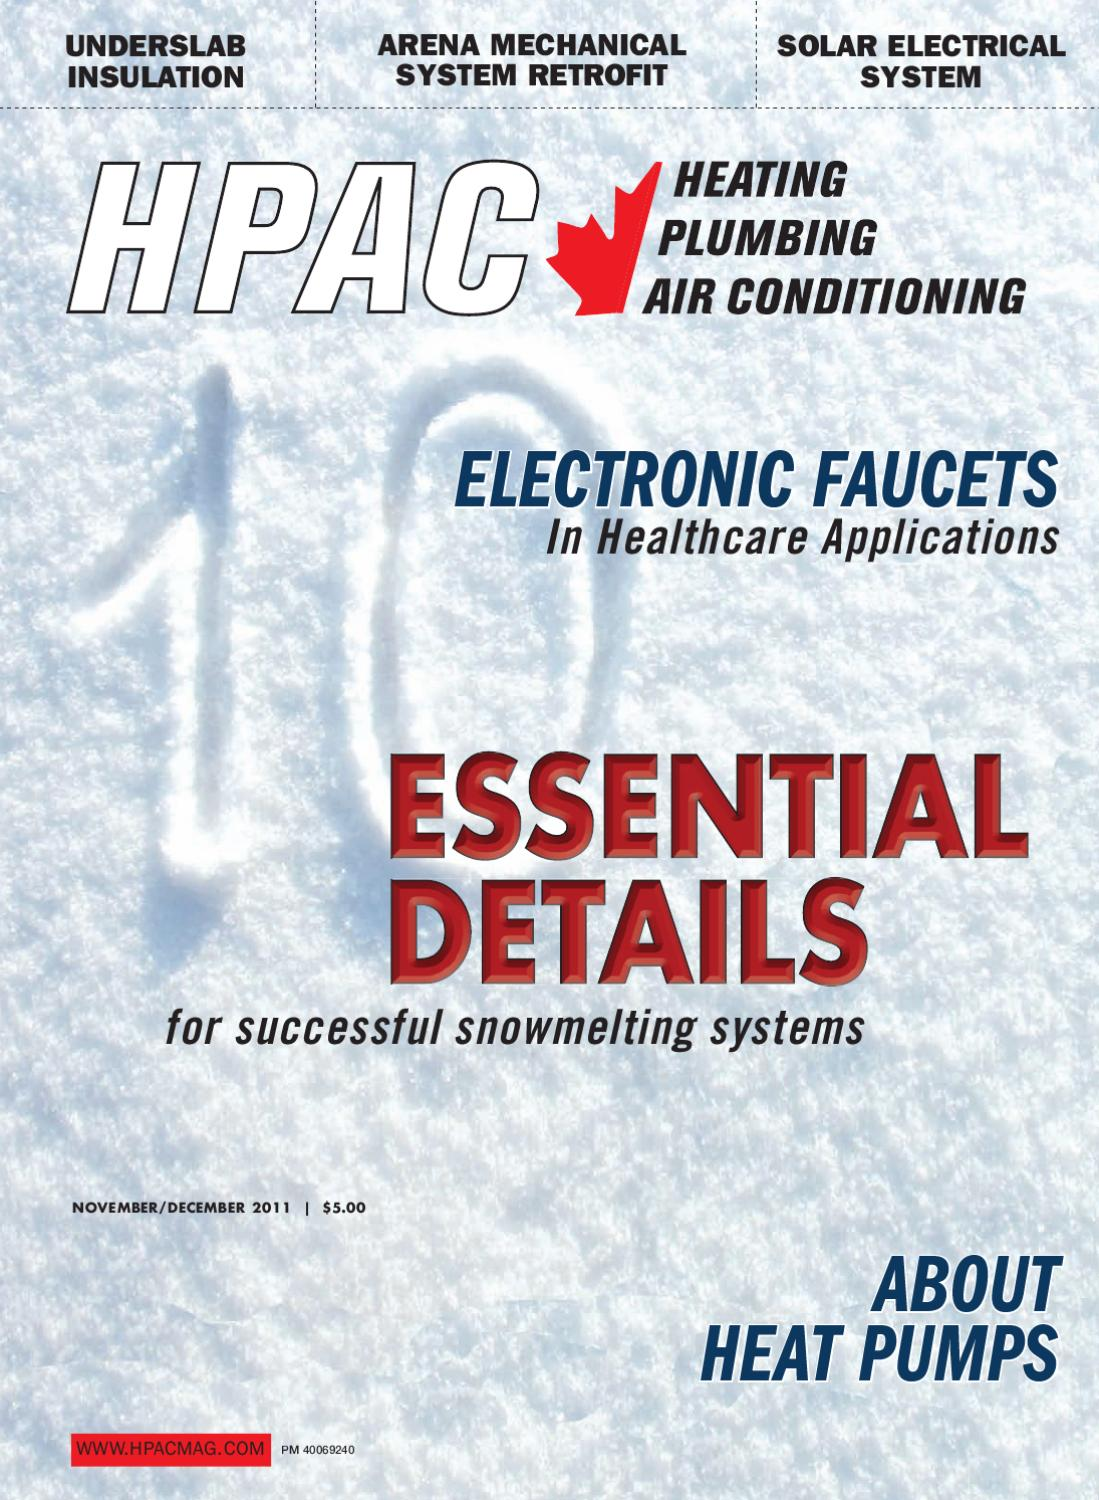 HPAC November/December 2011 by Annex Business Media - issuu